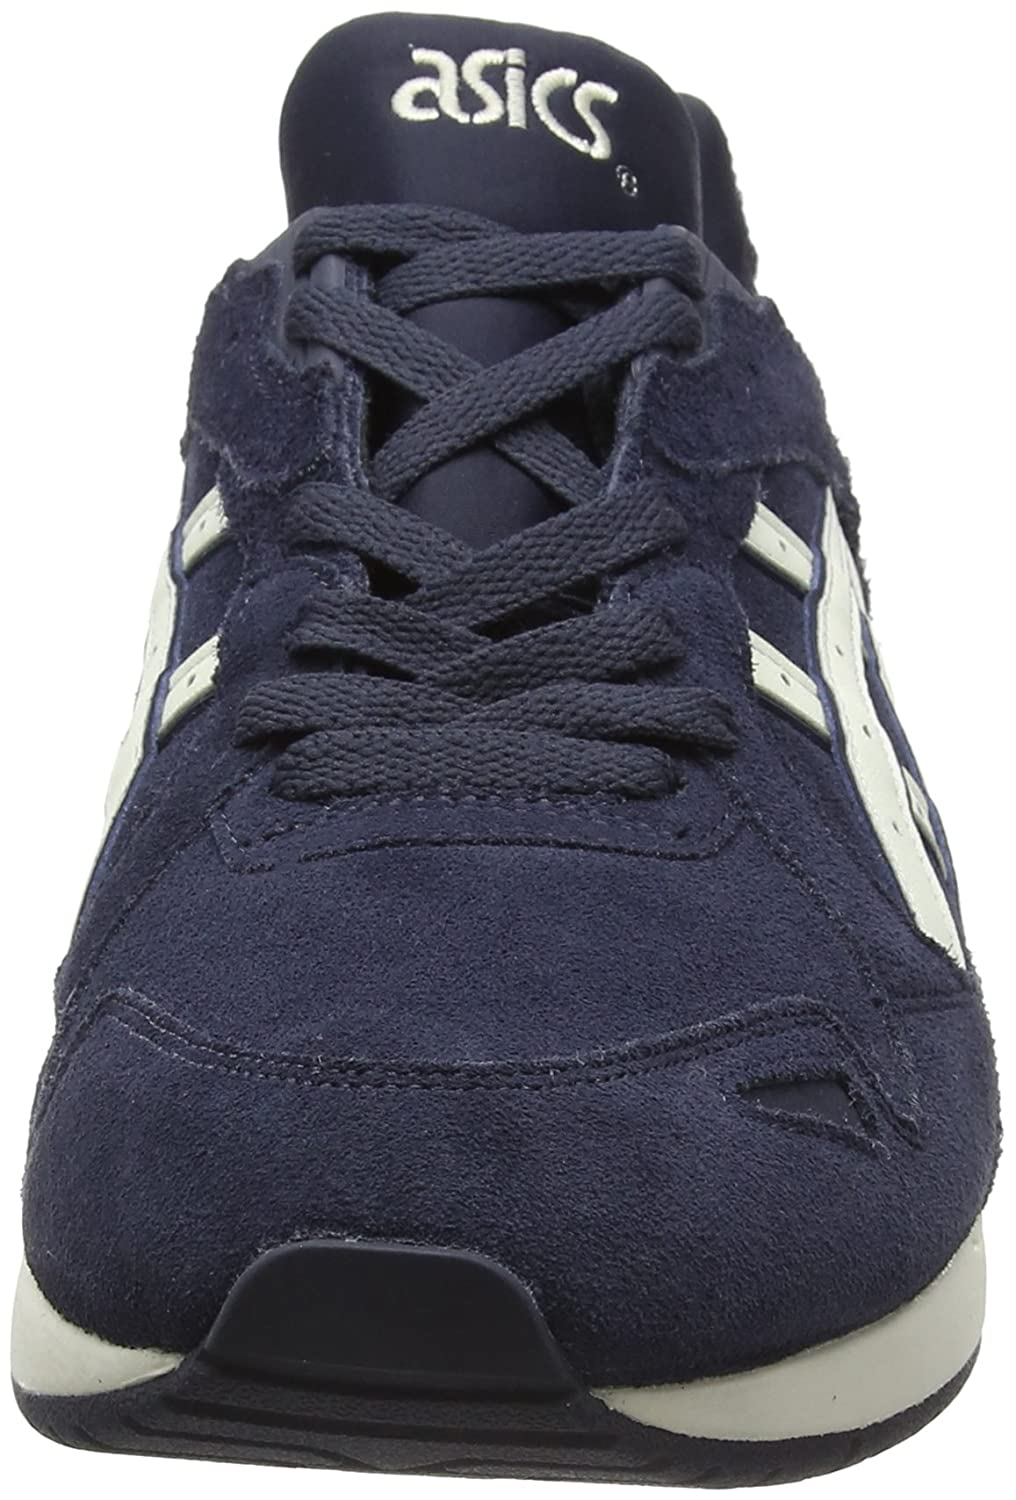 Sneakers Low Asics Unisex Gt Cool Xpress Low Top Gt Cool pour adultes: 00b0660 - vendingmatic.info